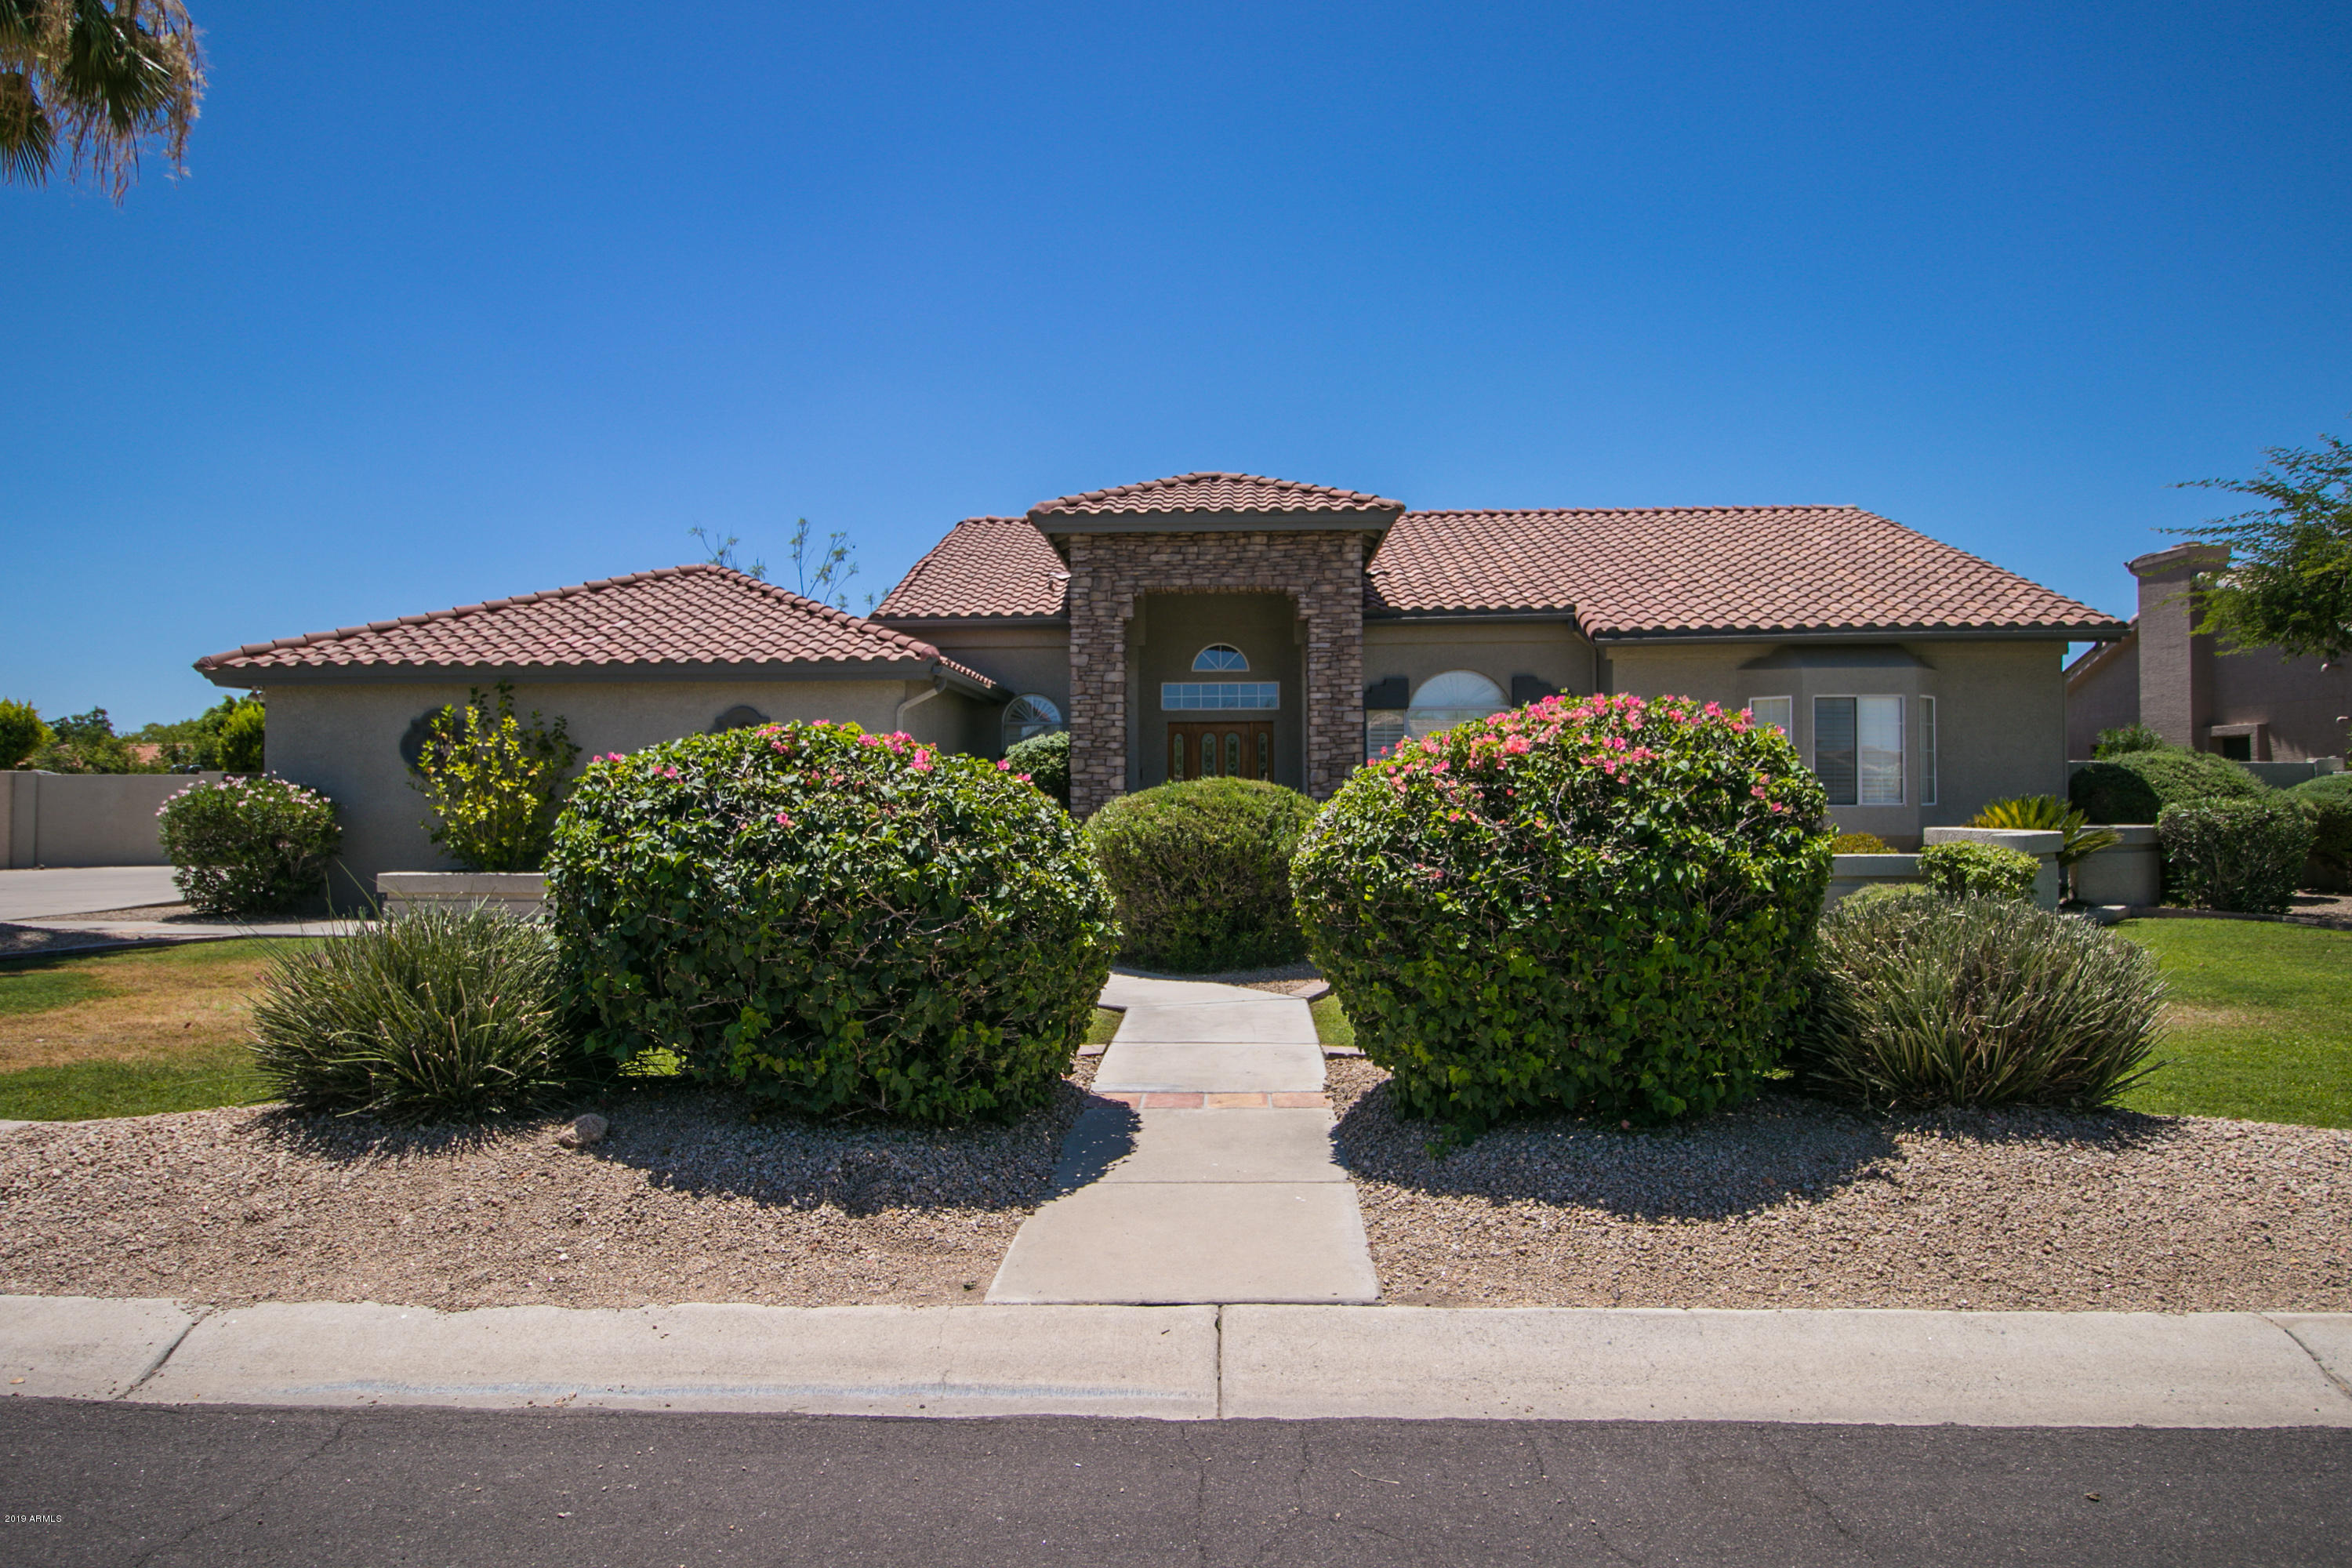 7343 W PORT AU PRINCE Lane, Peoria, Arizona